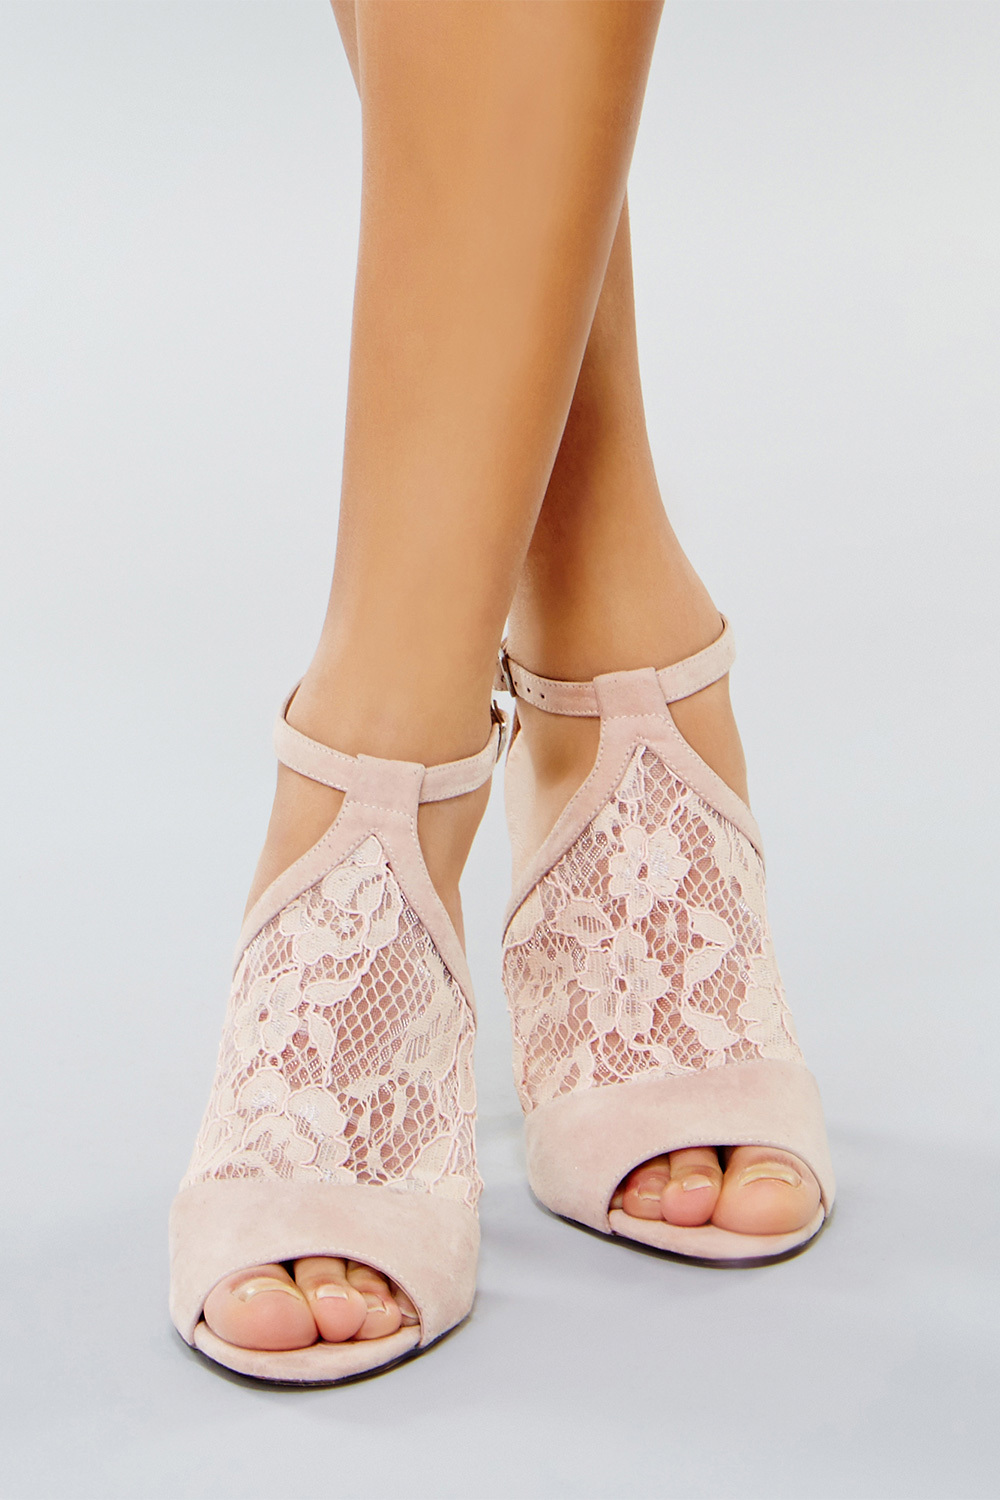 Esmae Lace Cage Shoe - predominant colour: blush; occasions: evening, occasion; material: lace; heel height: high; ankle detail: ankle strap; heel: stiletto; toe: open toe/peeptoe; style: standard; finish: plain; pattern: patterned/print; embellishment: lace; season: s/s 2016